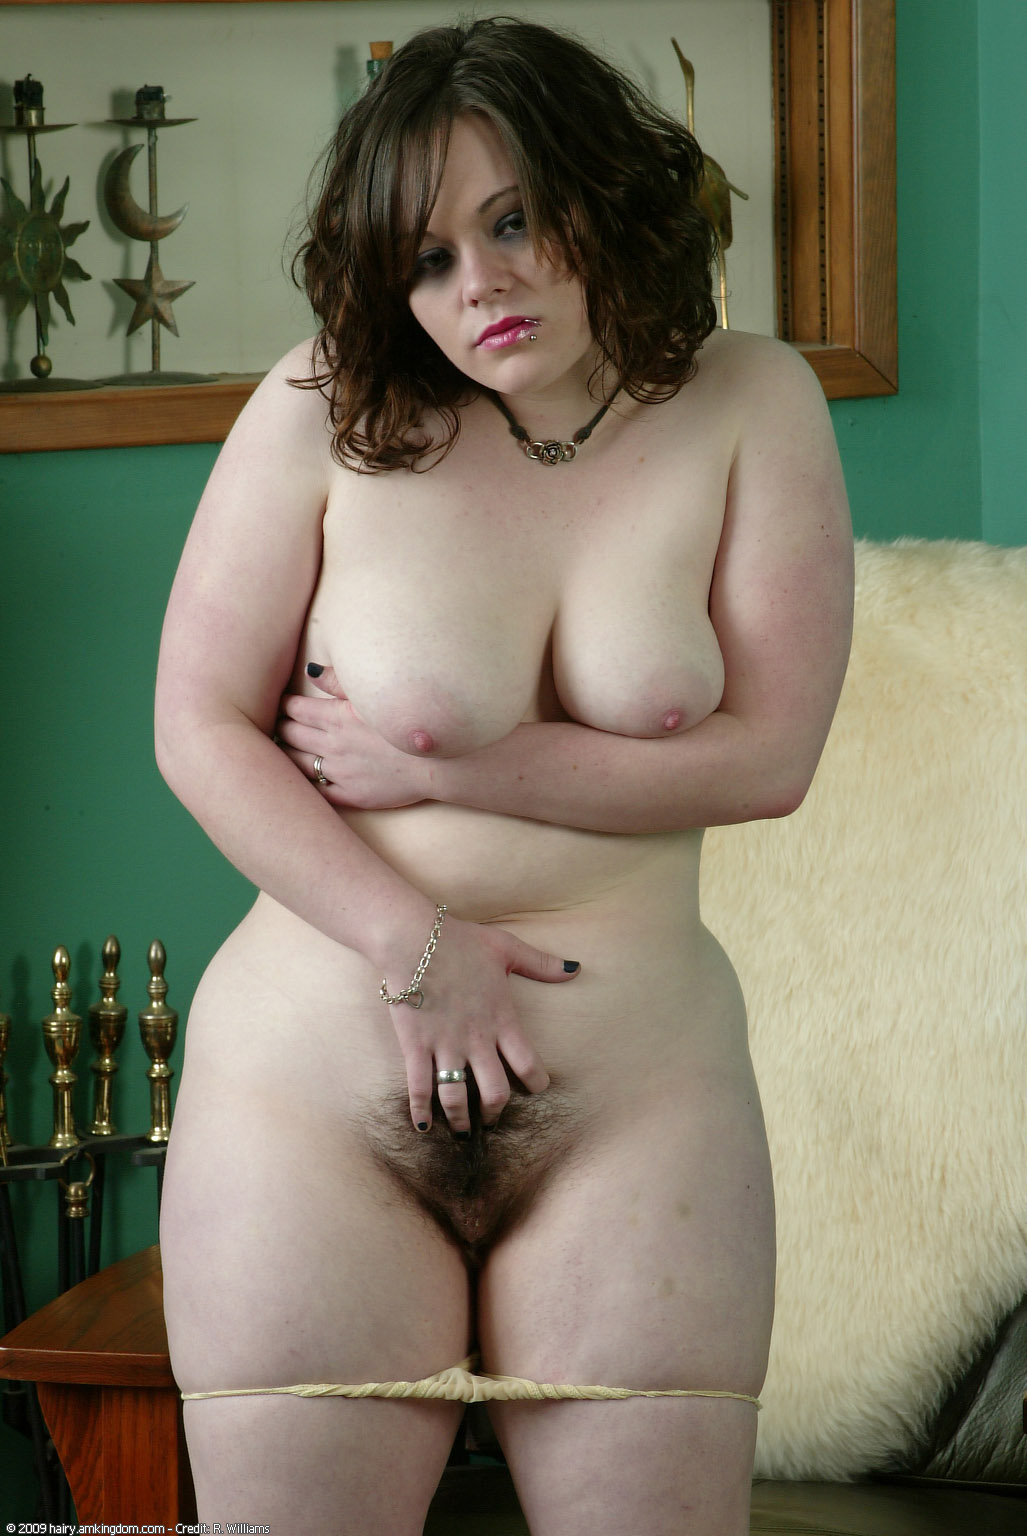 Hairy fat women naked